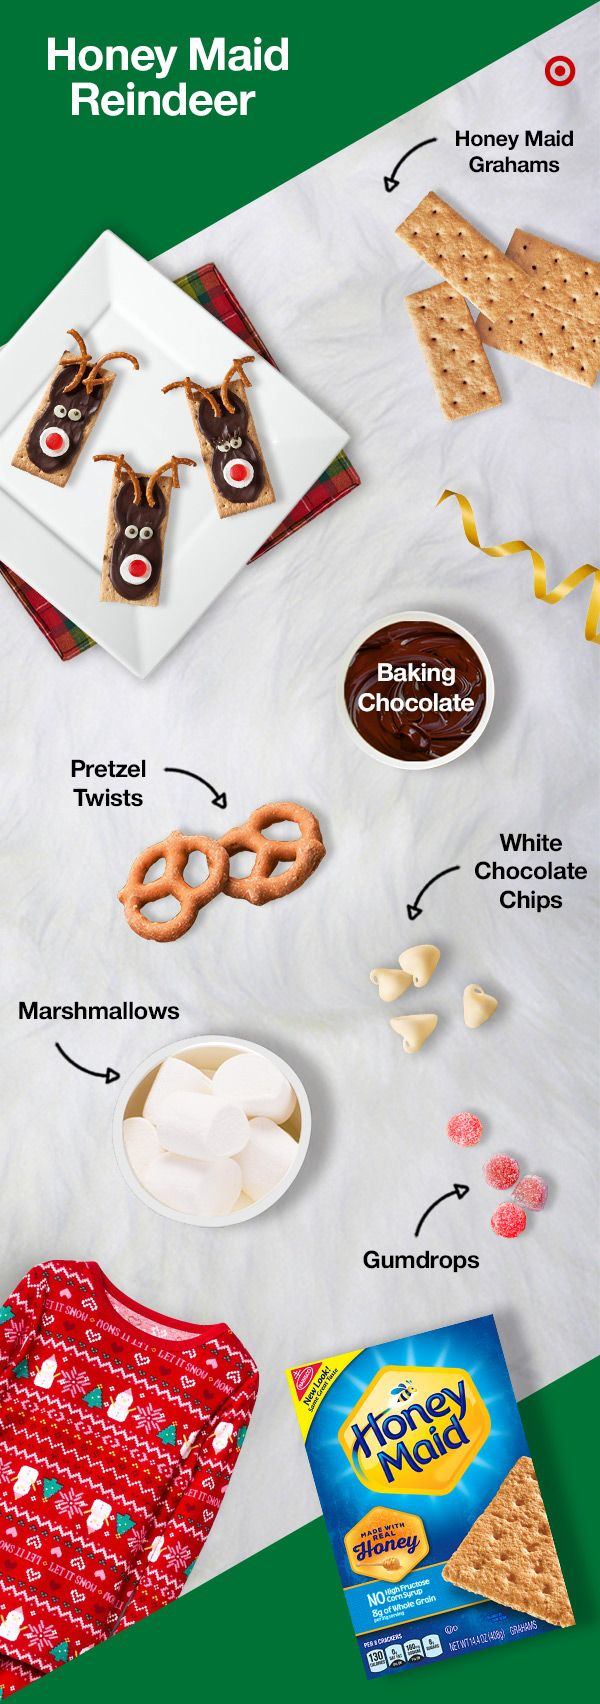 Spread melted chocolate on Honey Maid Grahams. Use pretzels for antlers. Make a face with marshmallows & gumdrops. Add white chocolate chips for the eyes.